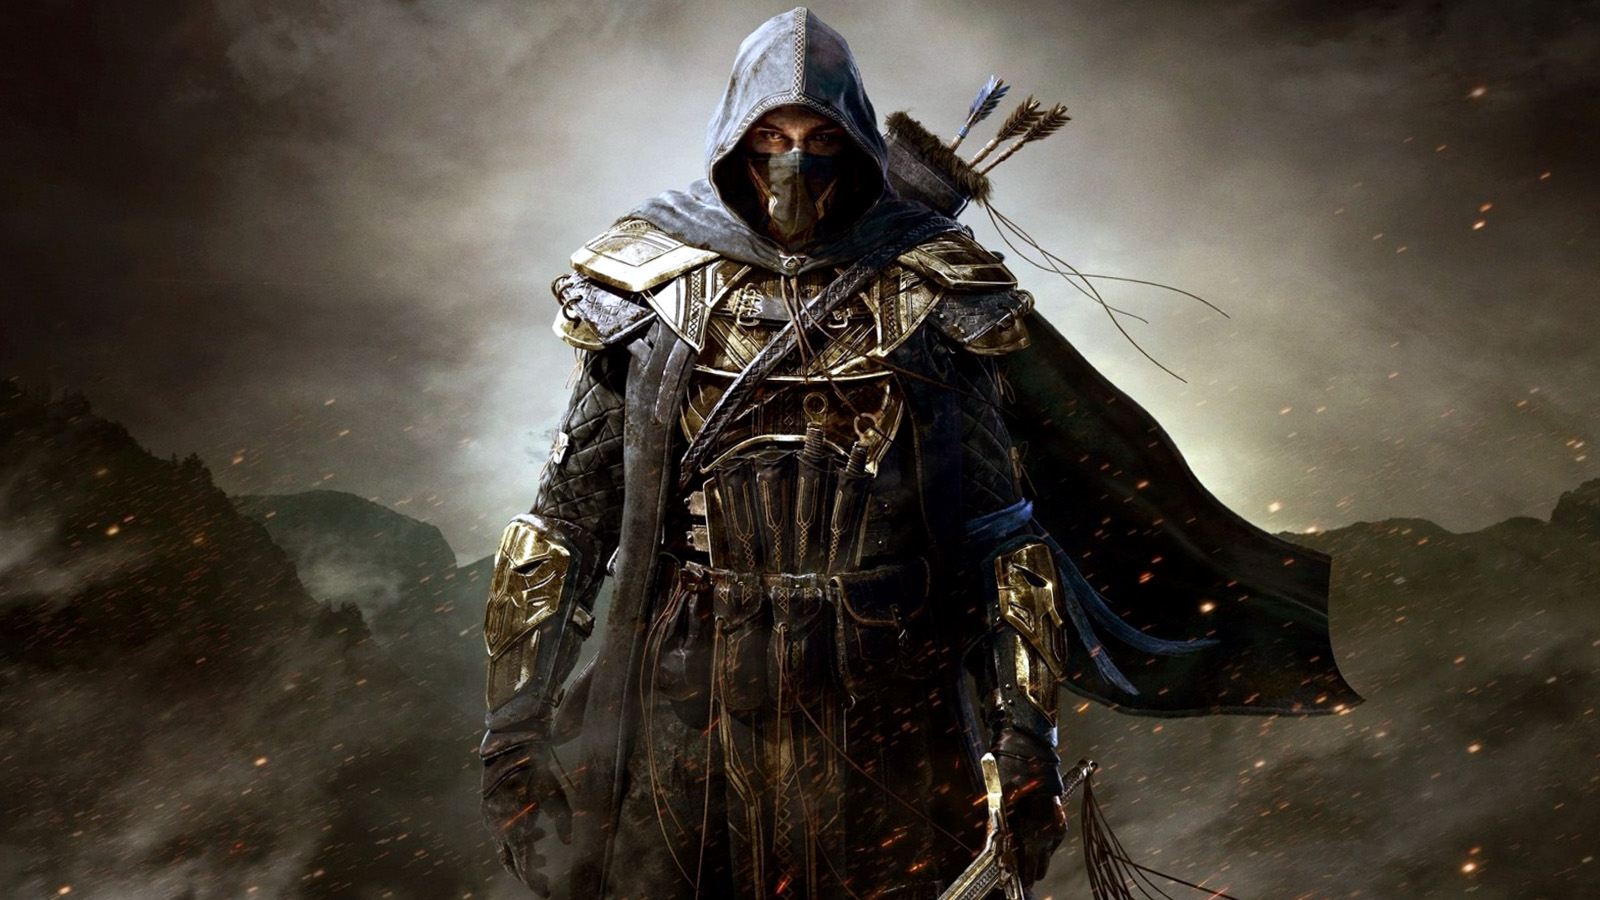 Cool Hero Thief Game Wallpapers HD Desktop and Mobile Backgrounds 1600x900